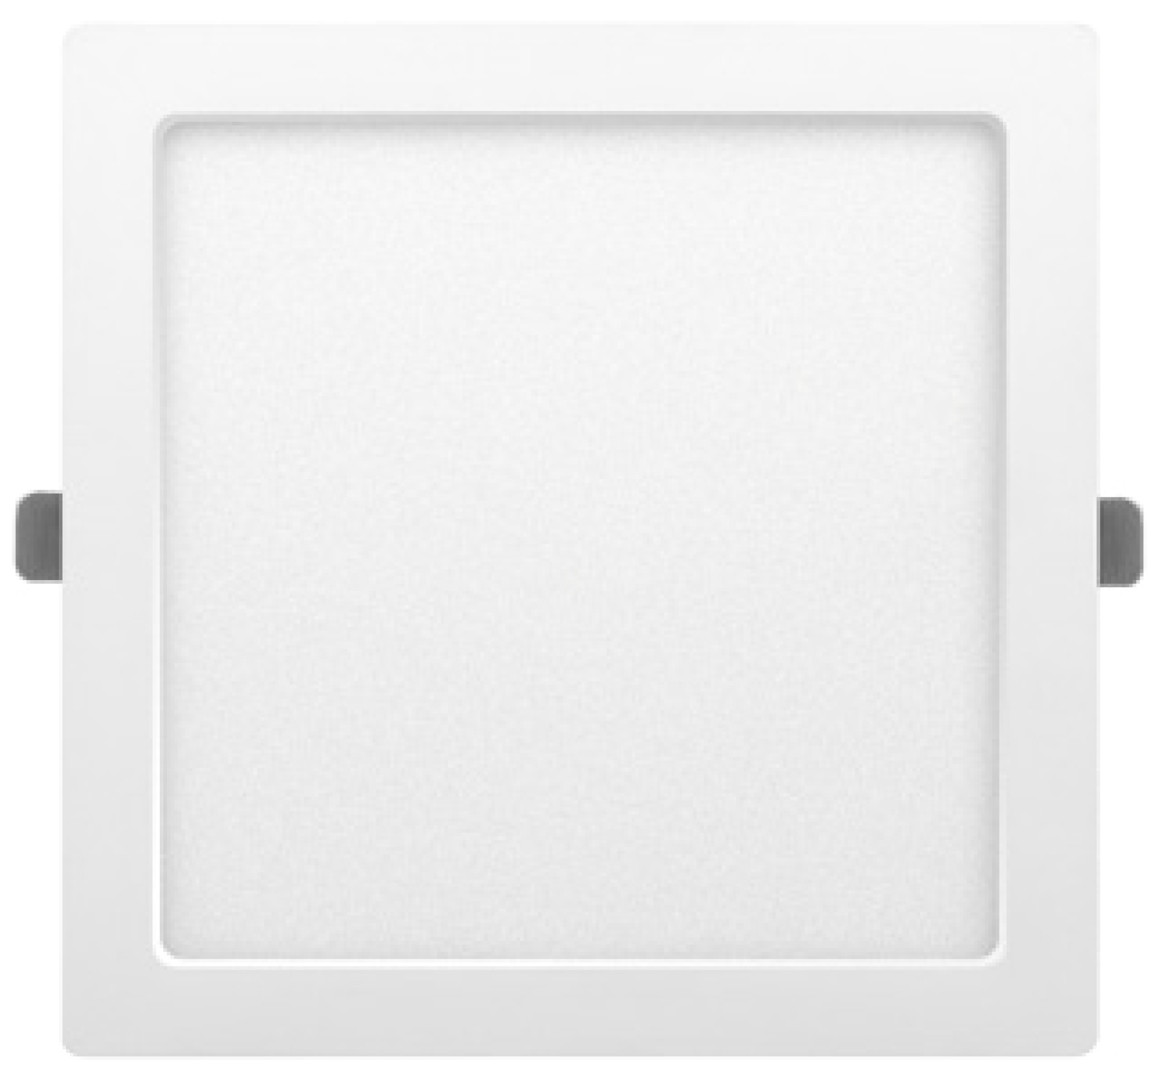 Downlight Led cuadrado empotrable o superficie Monet blanco 24W 6000°K 291x291mm. (ALG 67658)